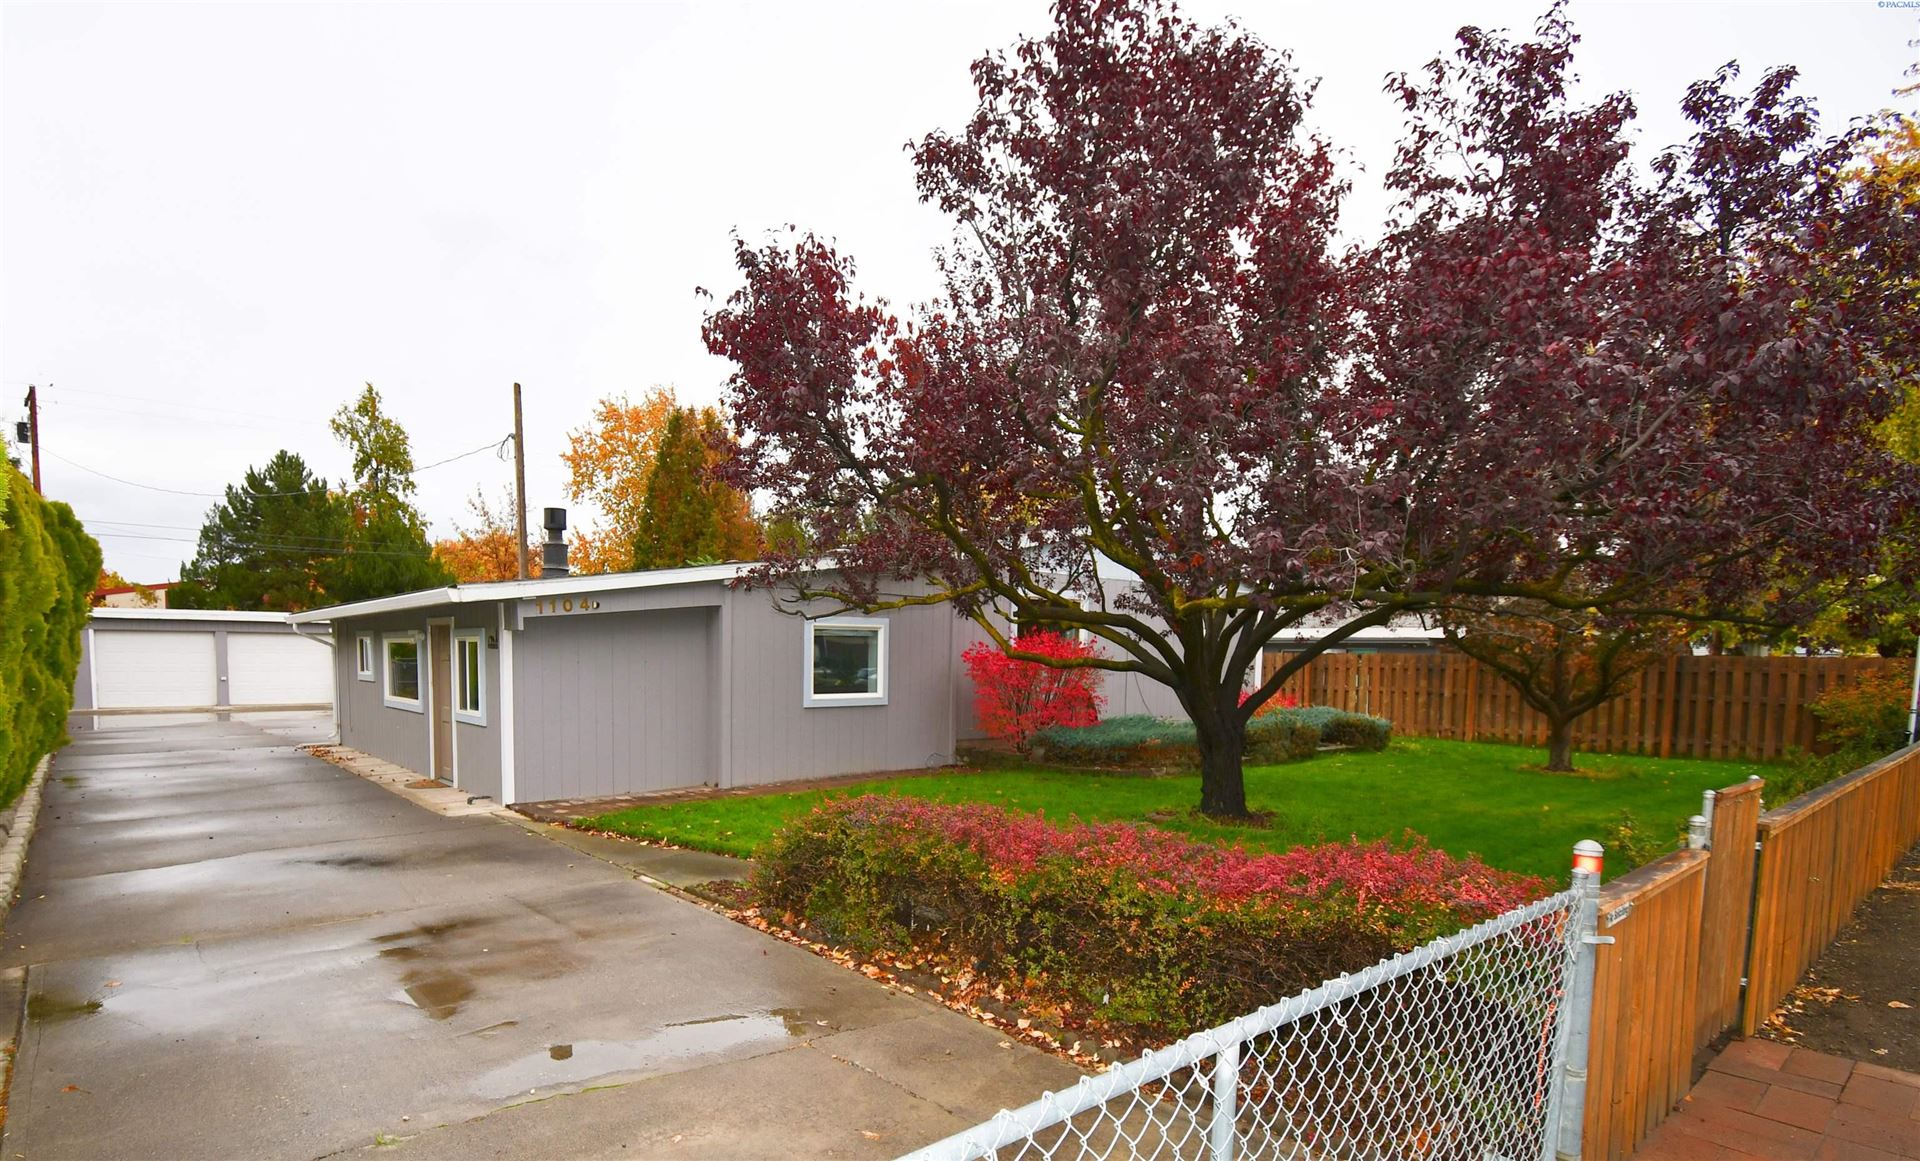 Photo of 1104 N 61st ave, West Richland, WA 99353 (MLS # 257430)